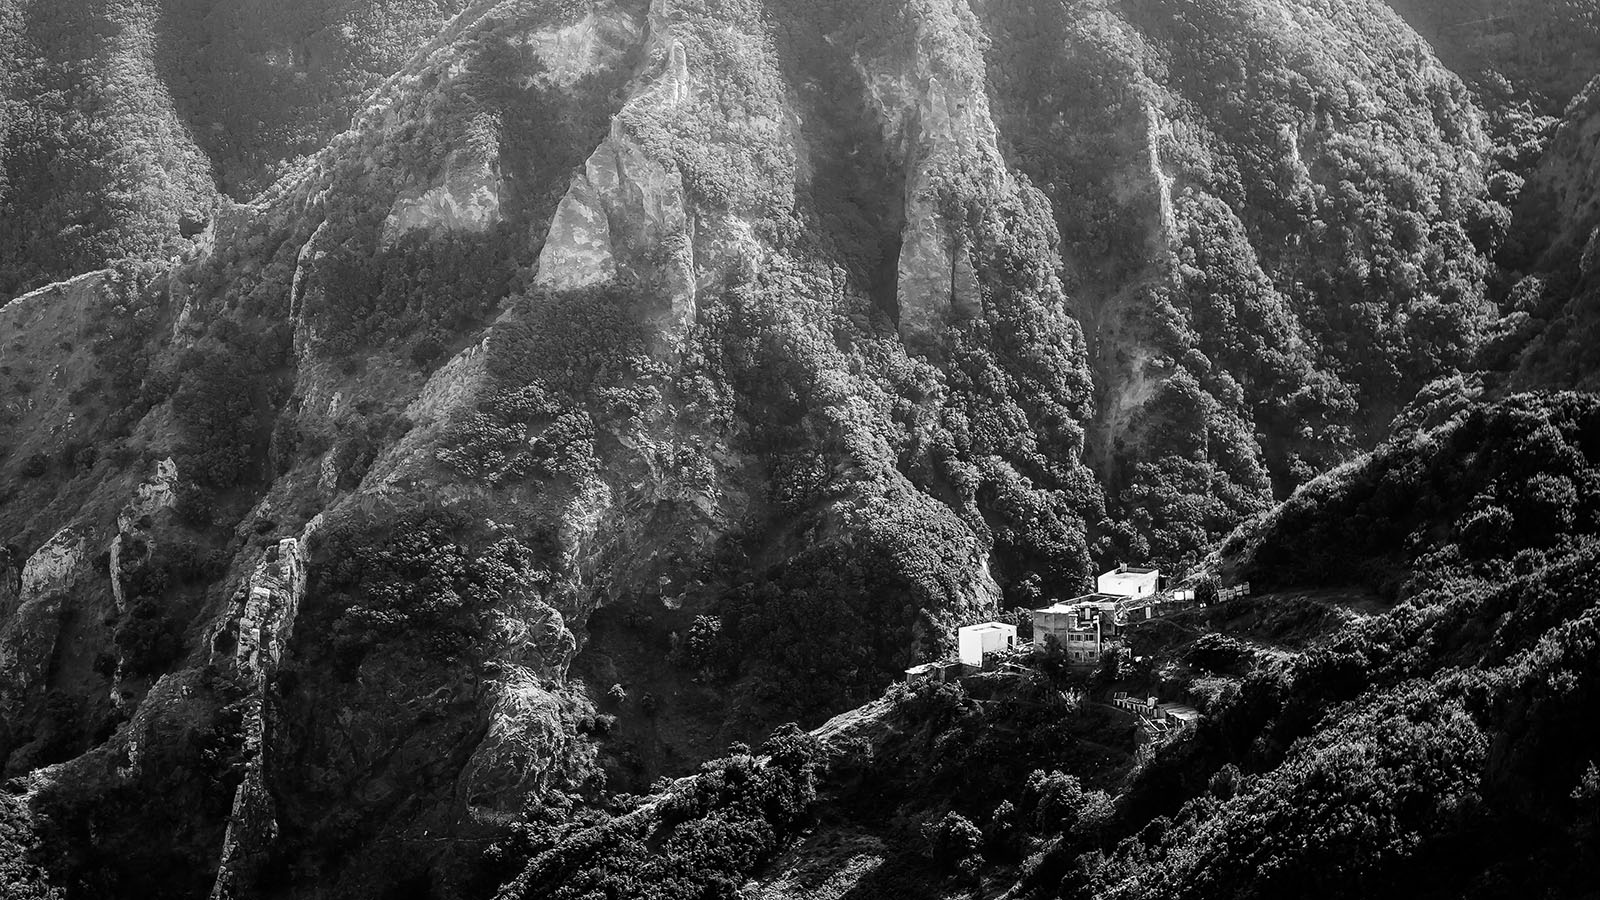 Tenerife - Anaga Mountain Village - Black & White Fine Art Photography Series